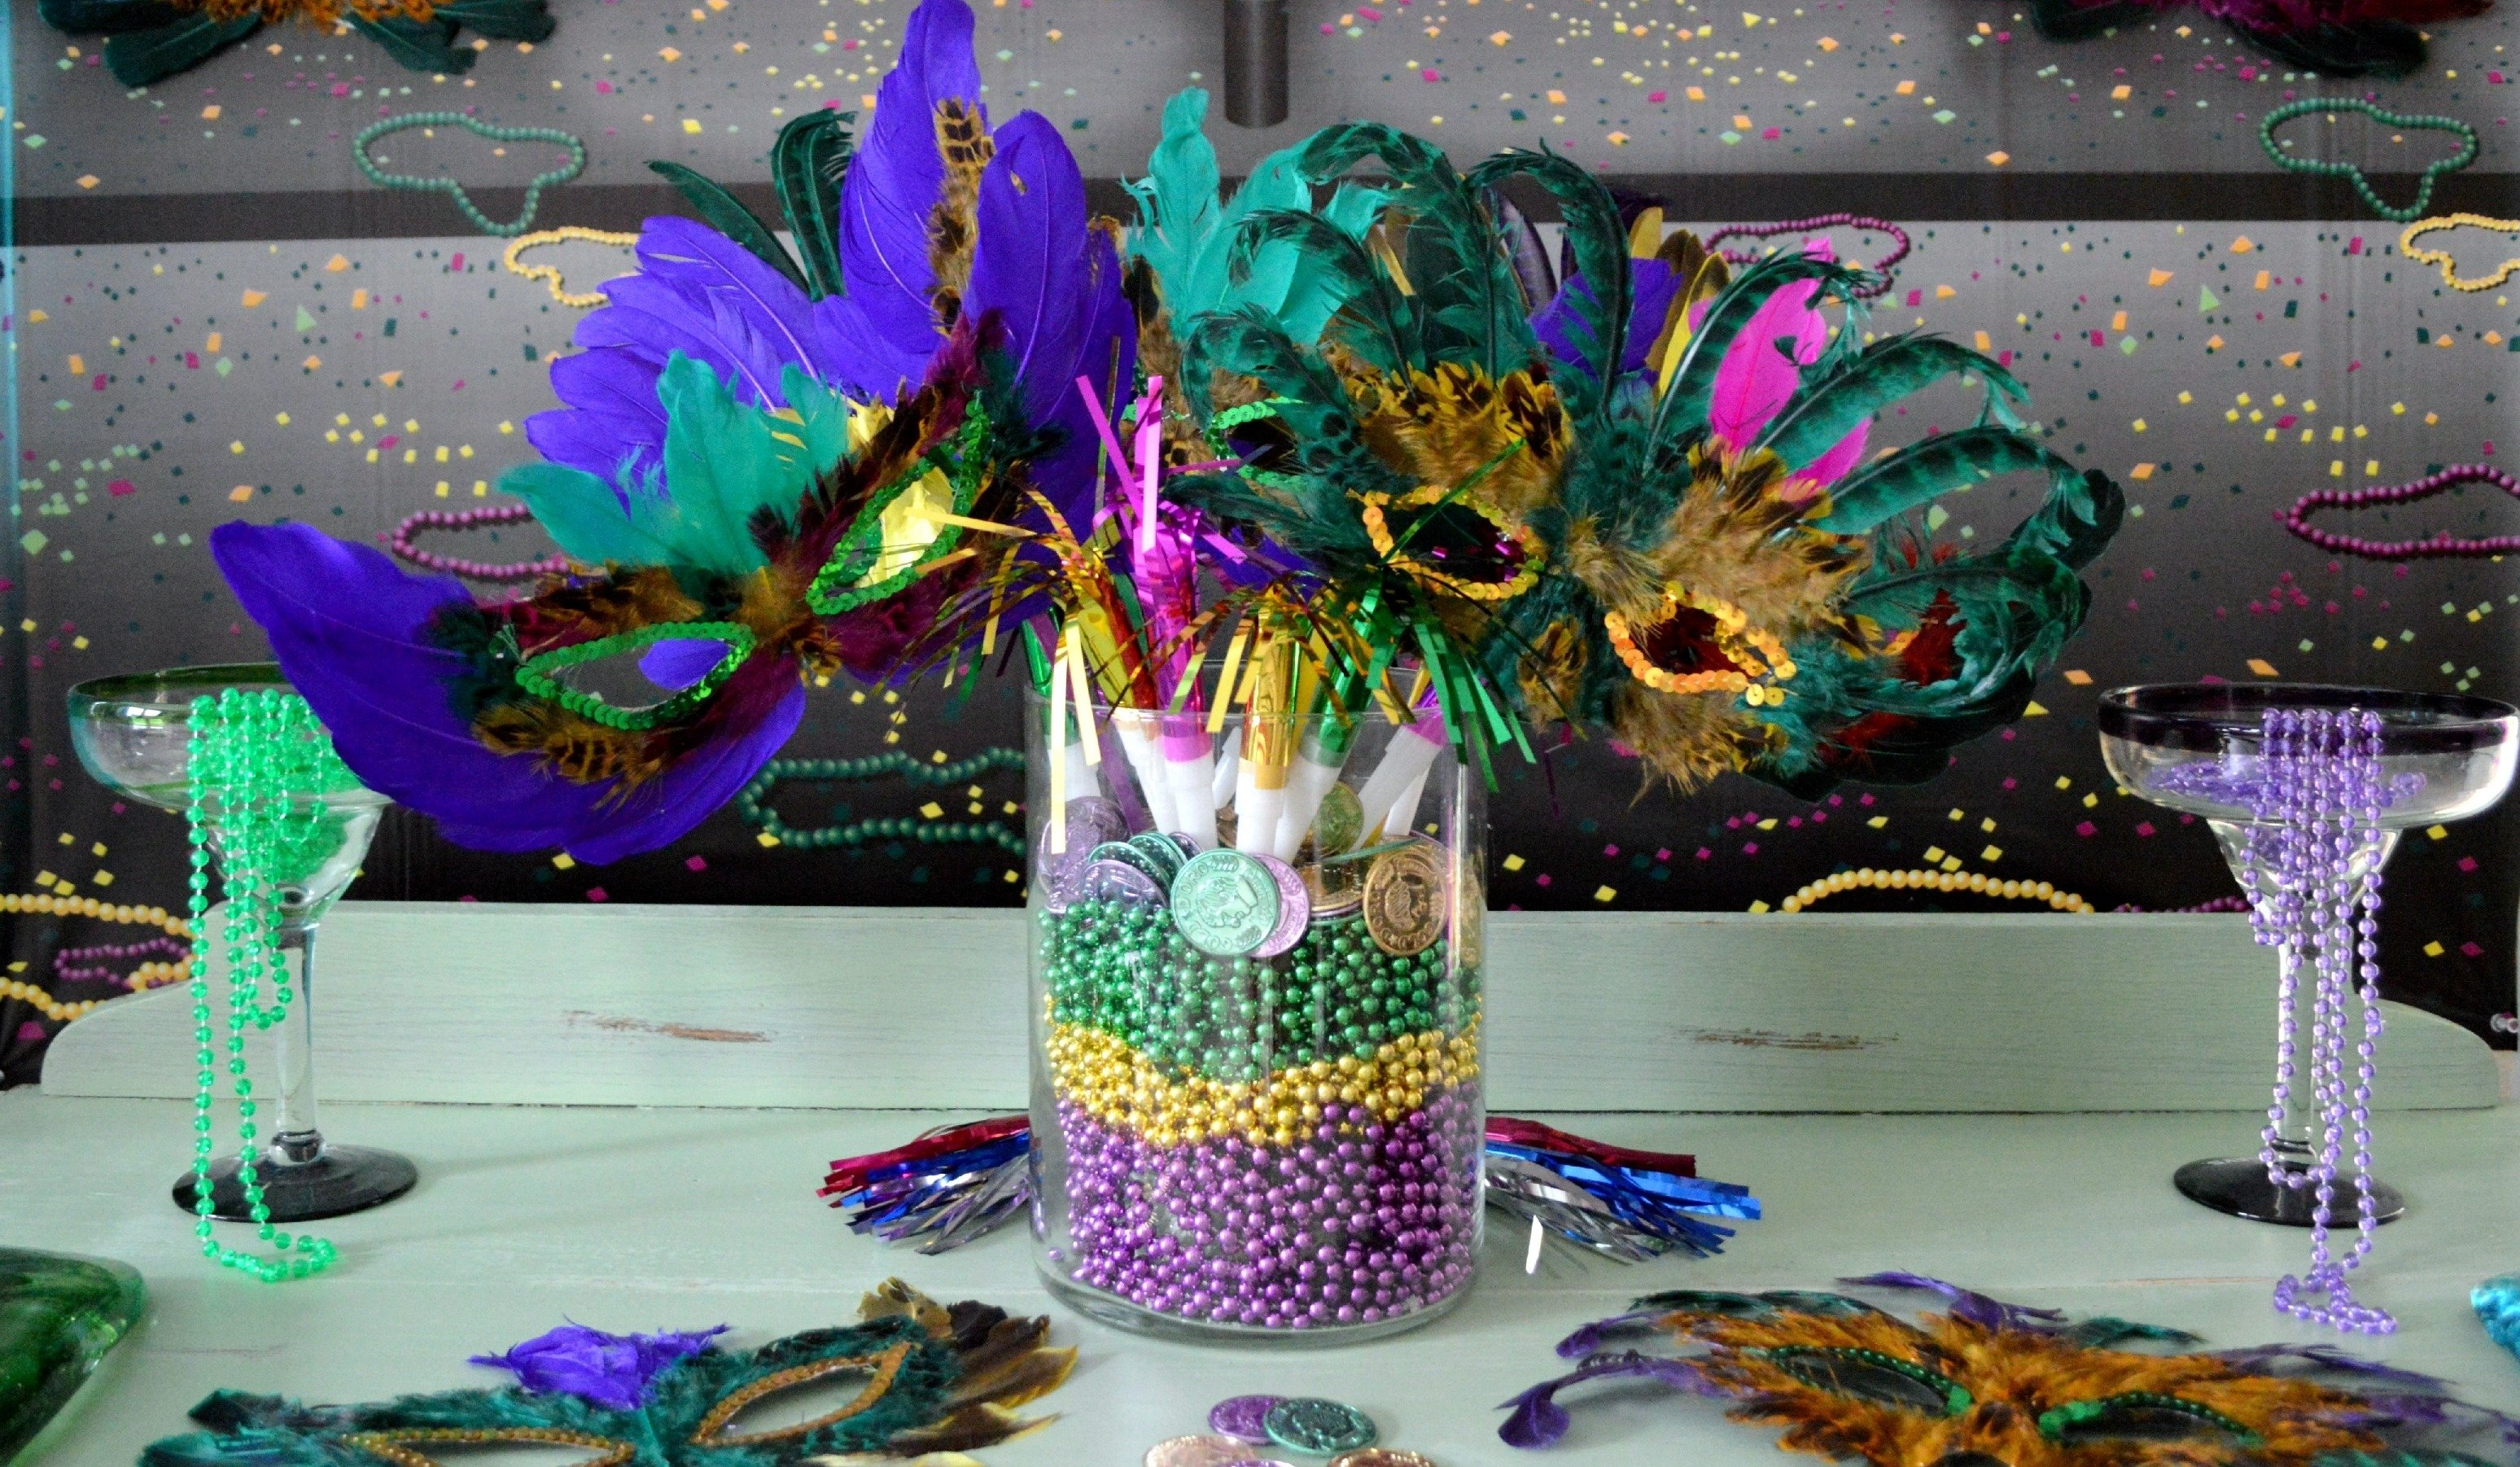 mardi gras centerpiece ideas is cool flower table centerpiece ideas